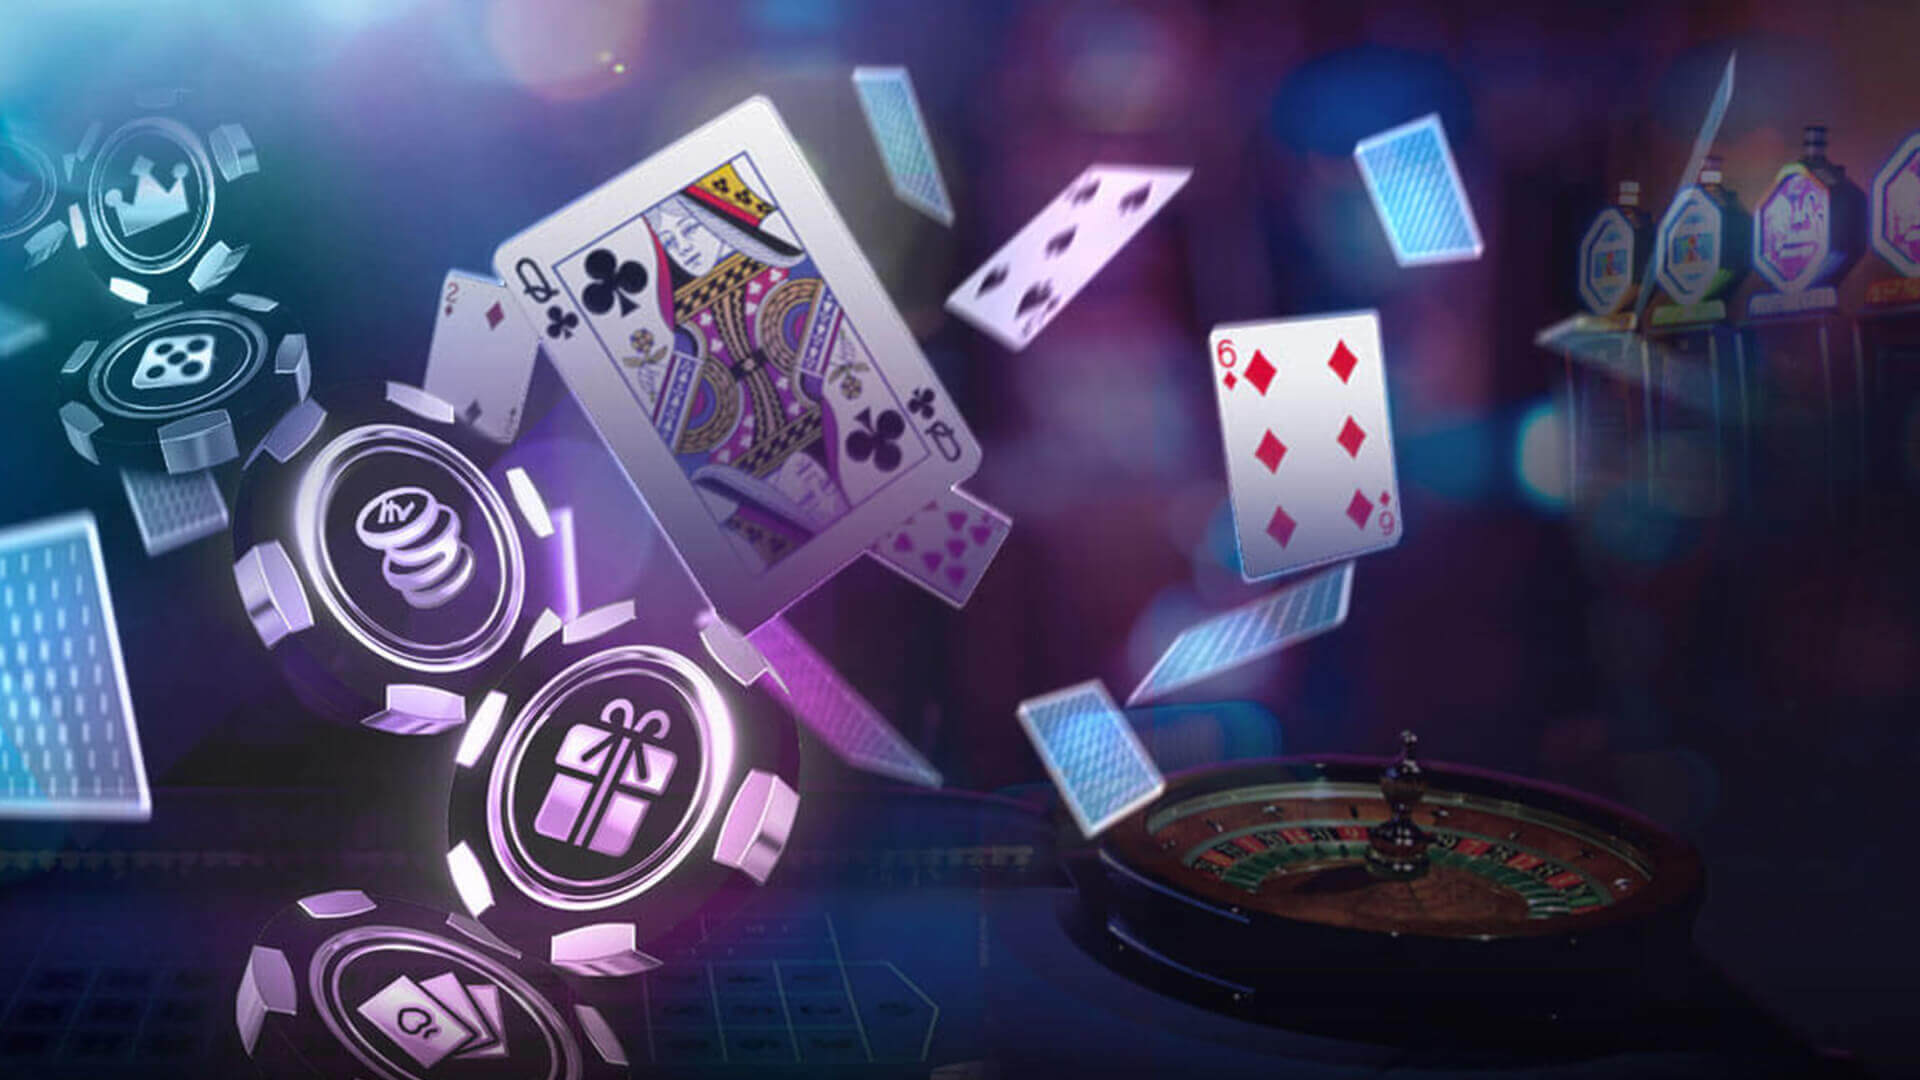 Up In Arms About Casino Game?